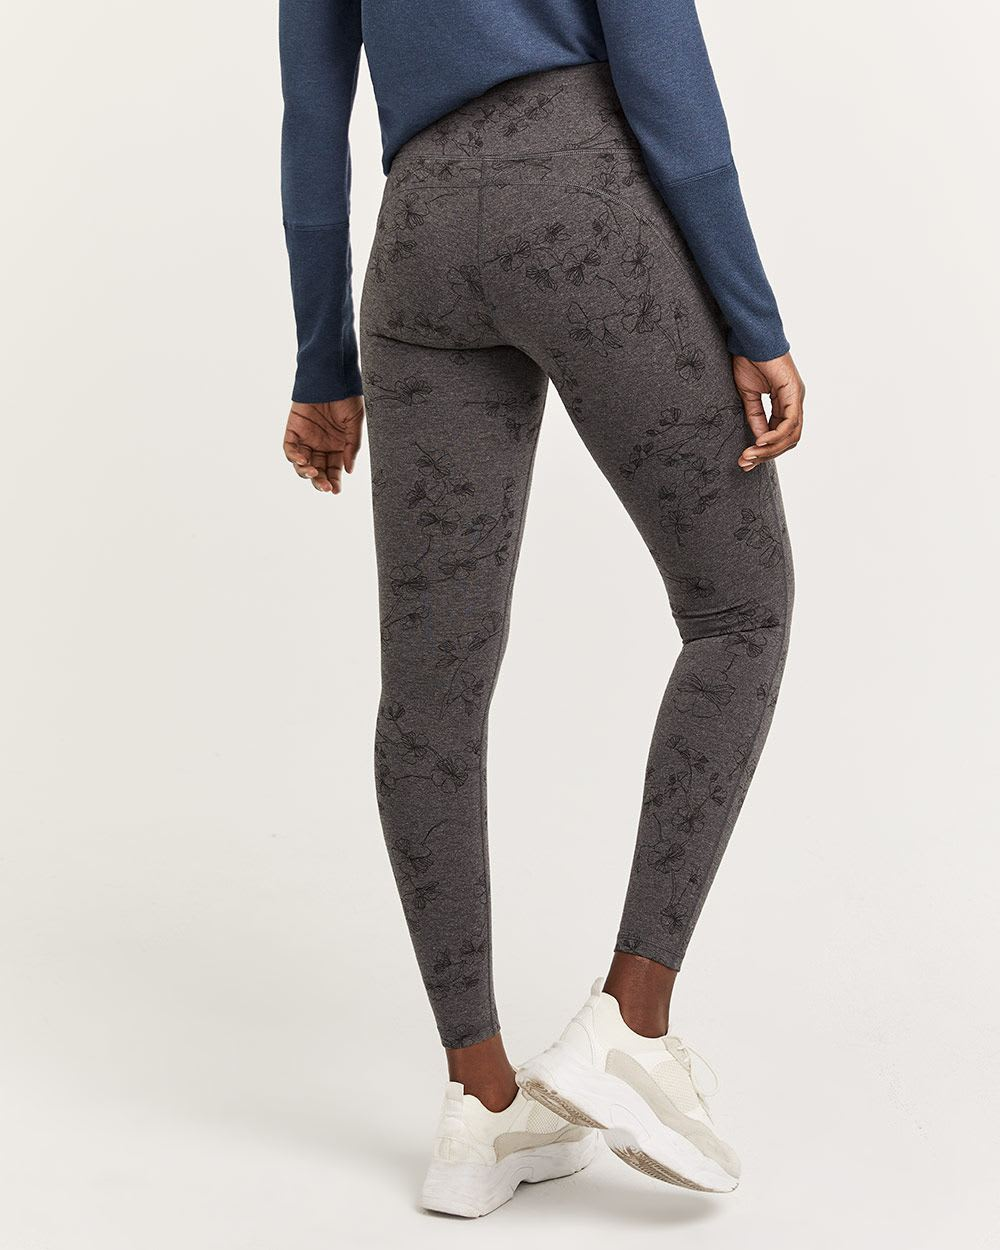 Hyba Printed Sculptor Leggings